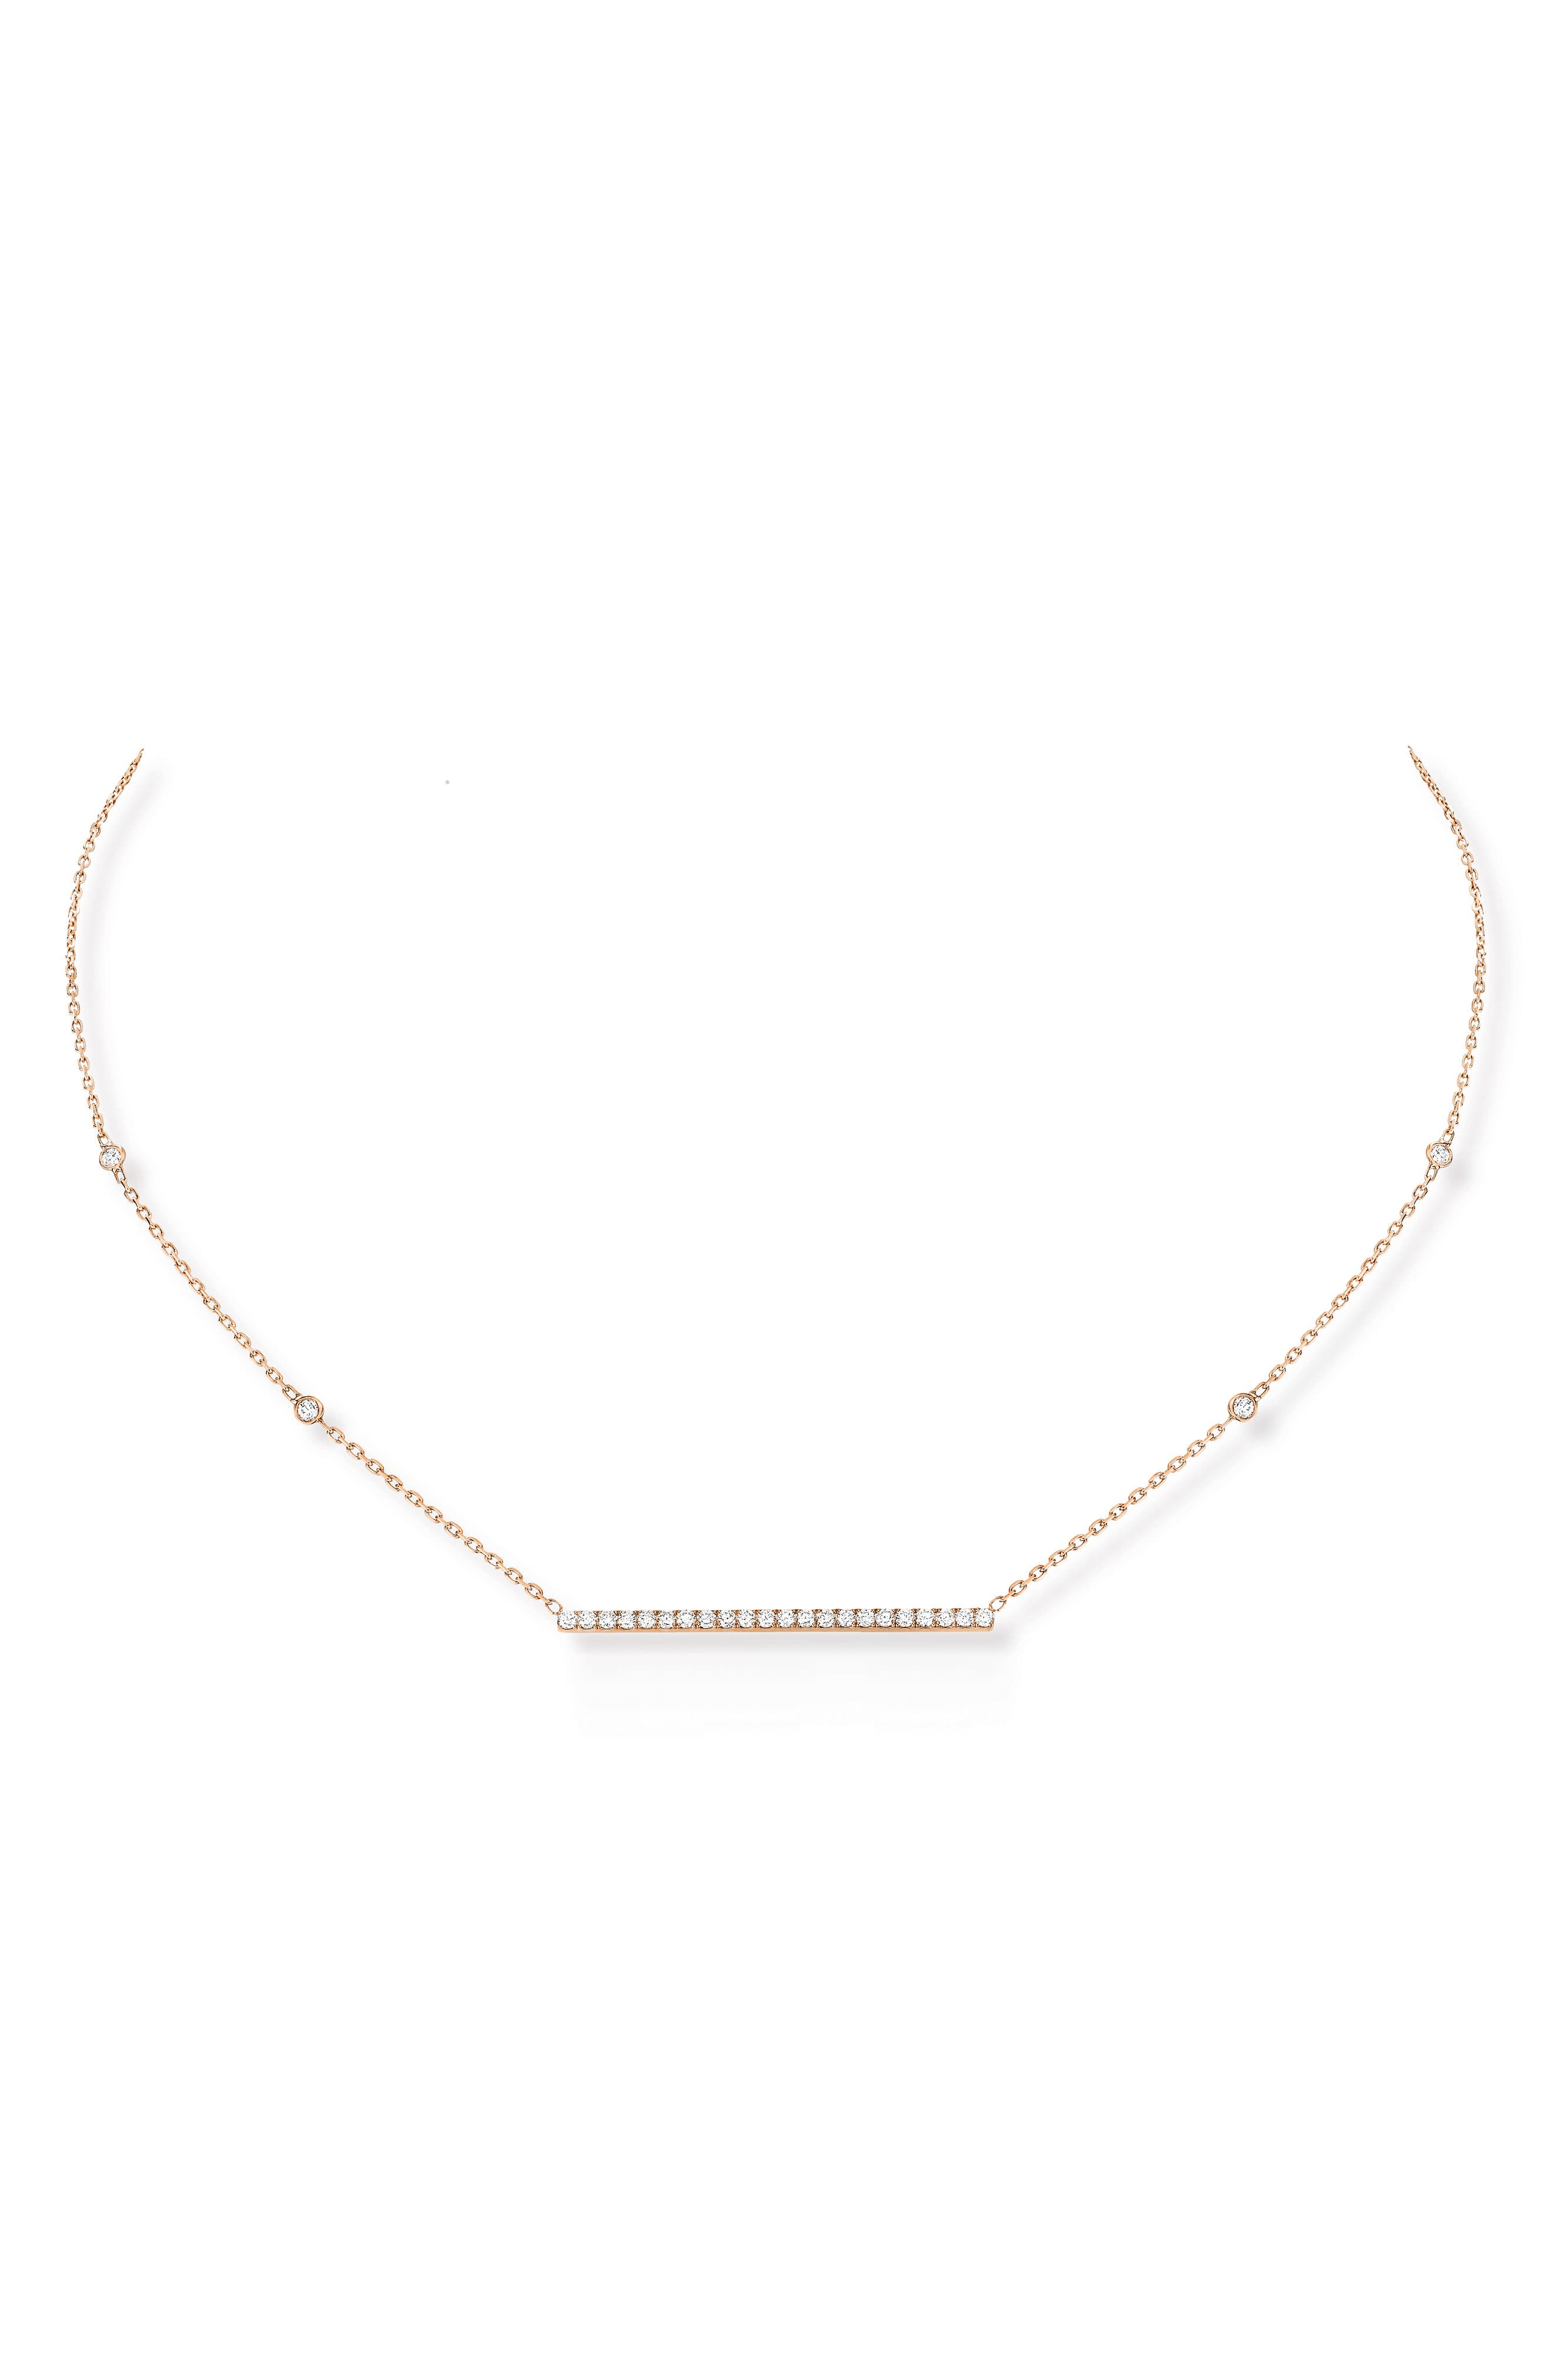 Gatsby Diamond Bar Necklace,                             Main thumbnail 1, color,                             Rose Gold